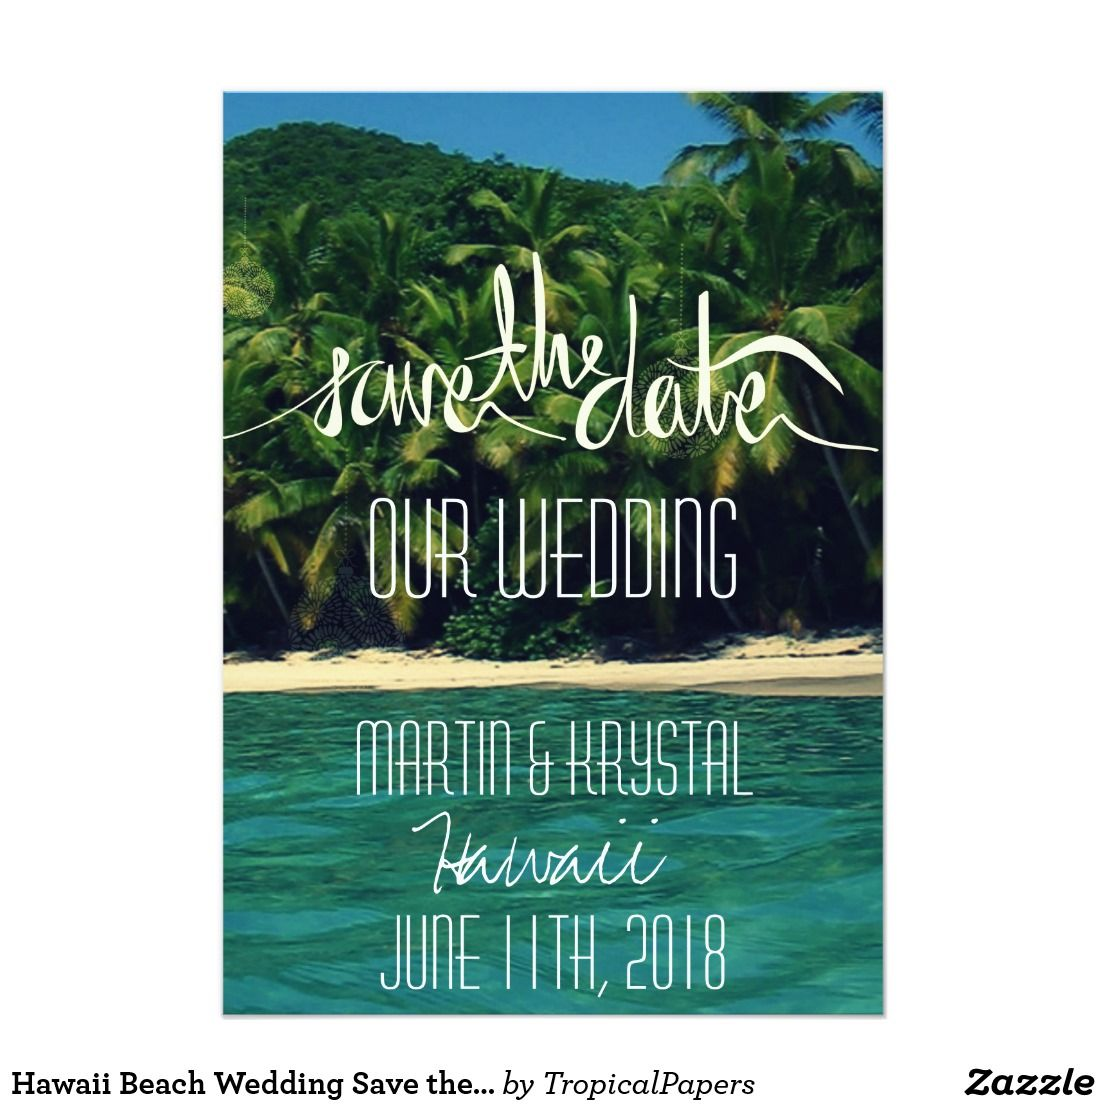 cruise wedding save the date announcement%0A Hawaii Beach Wedding Save the Date   x   Card